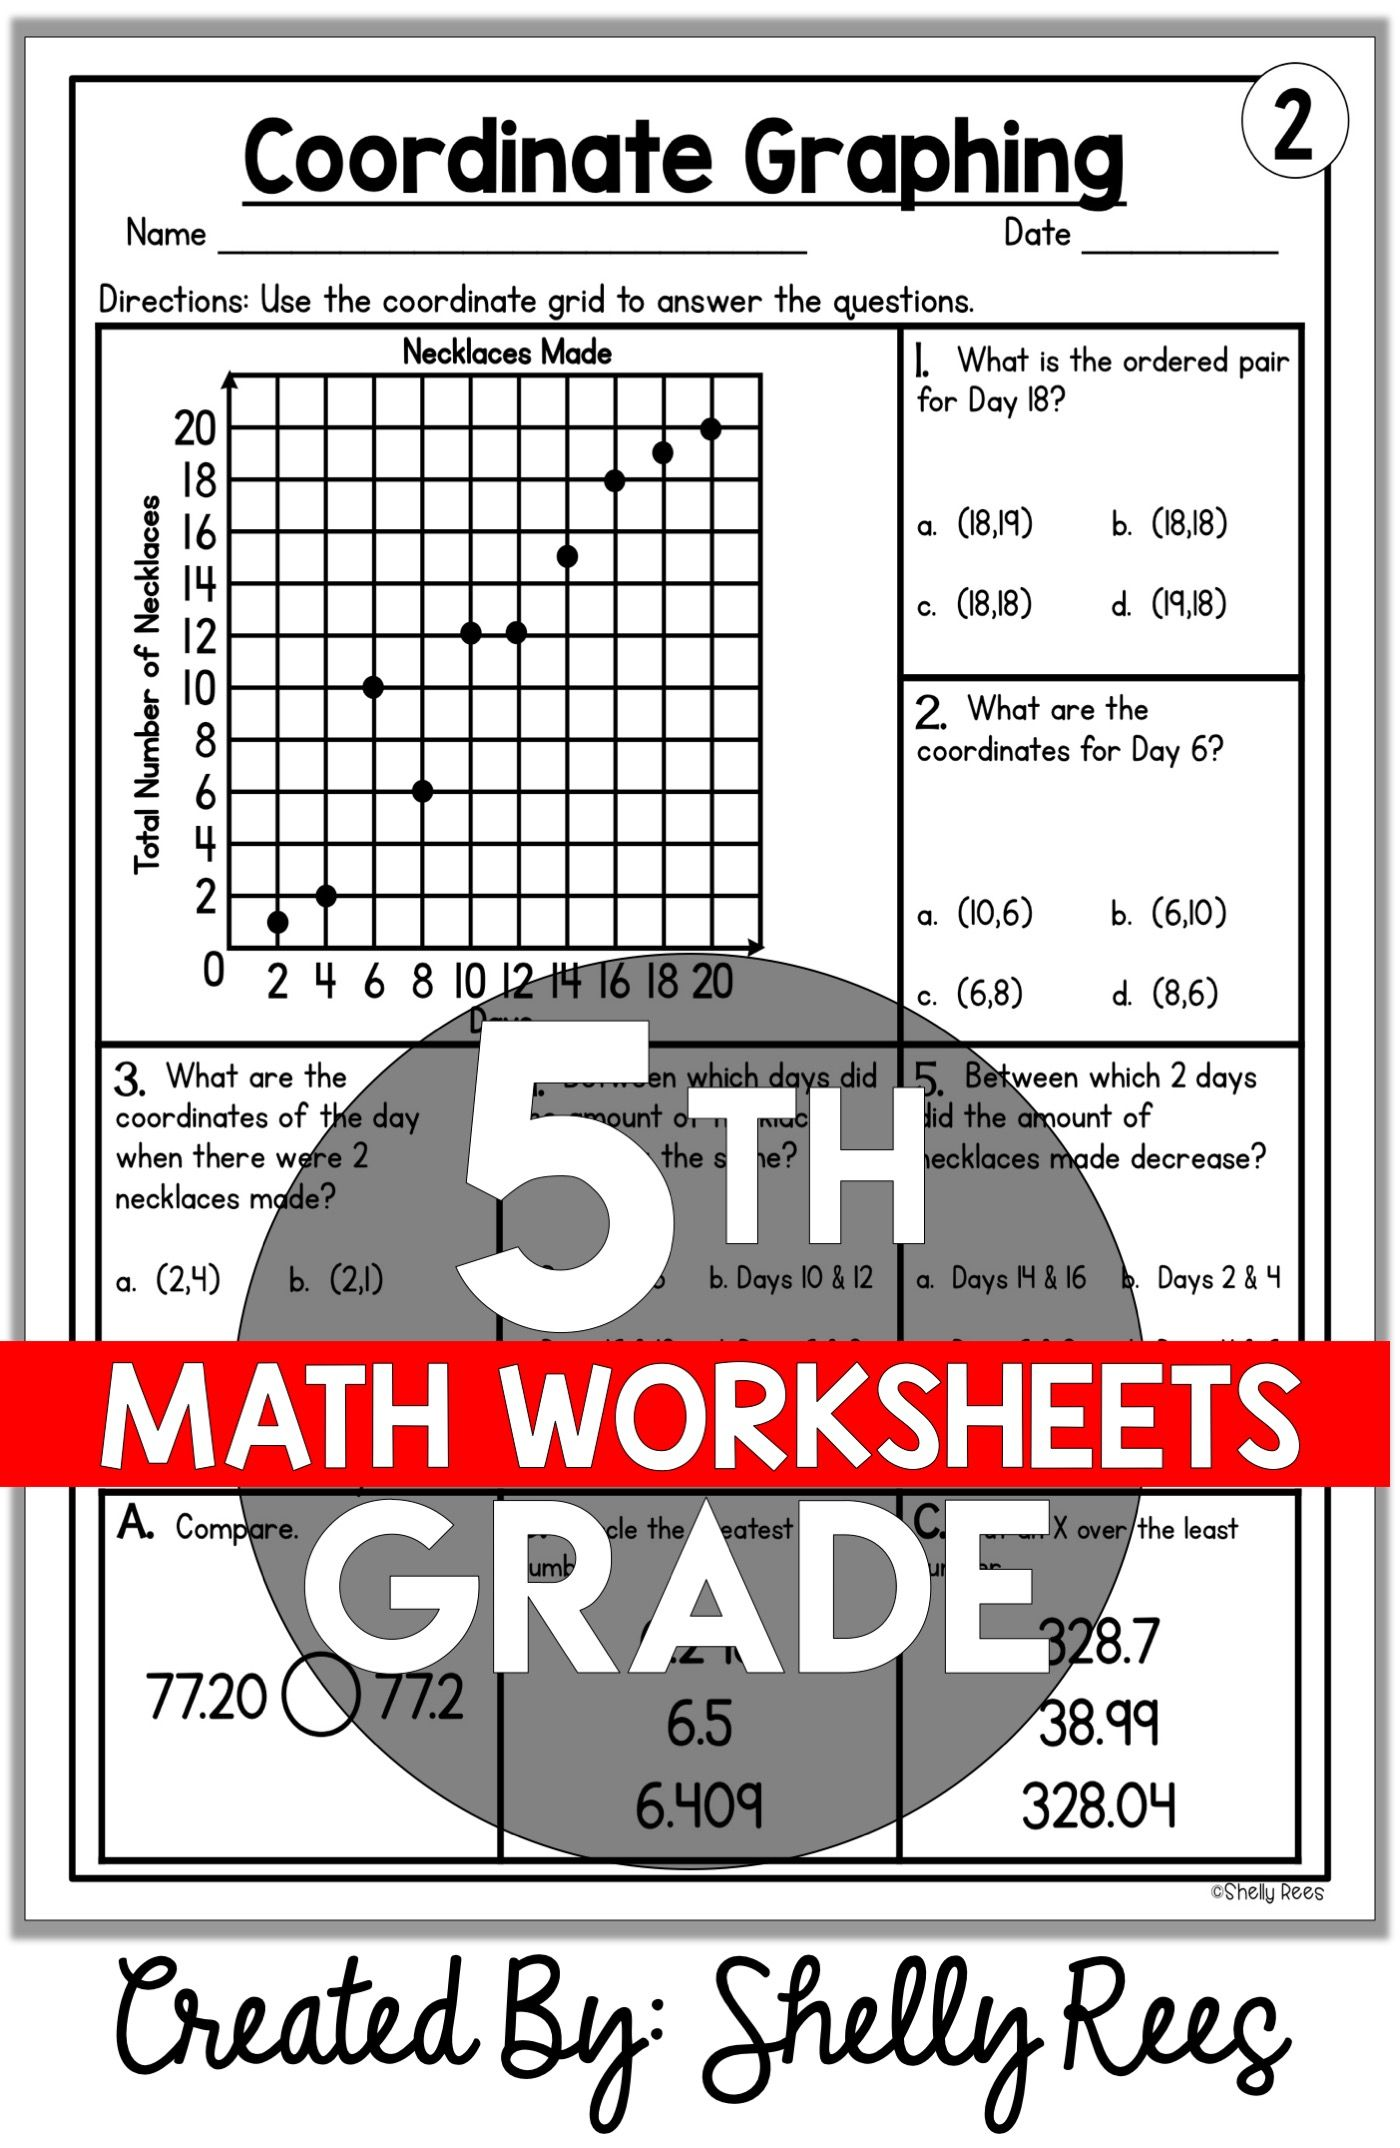 small resolution of 5th Grade Math Worksheets Free and Printable - Appletastic Learning   Math  review worksheets